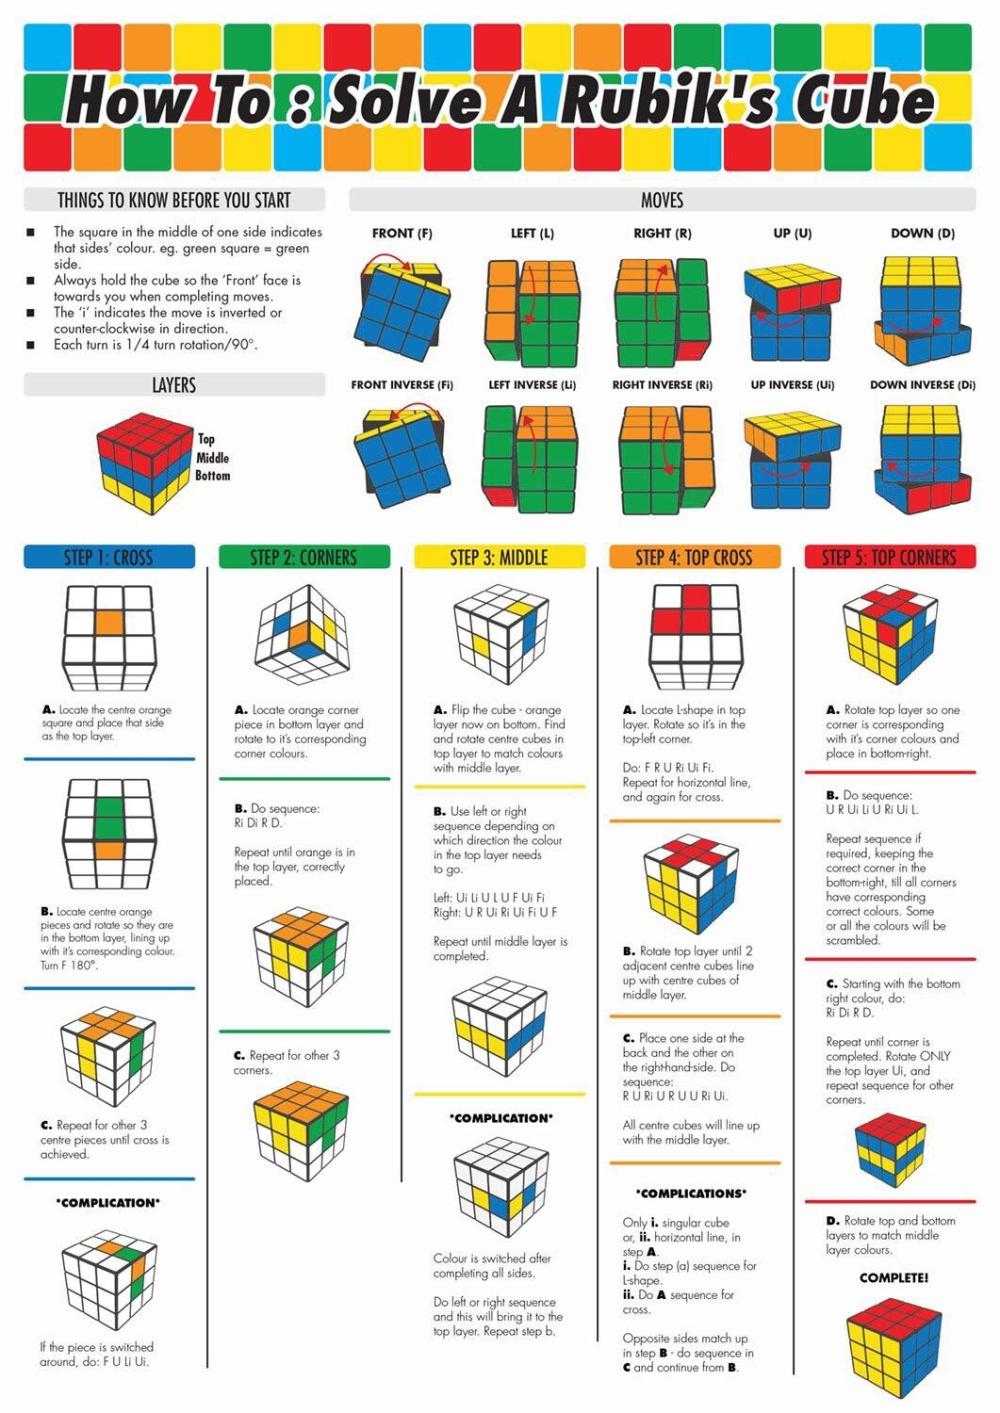 medium resolution of how to solve a rubik s cube